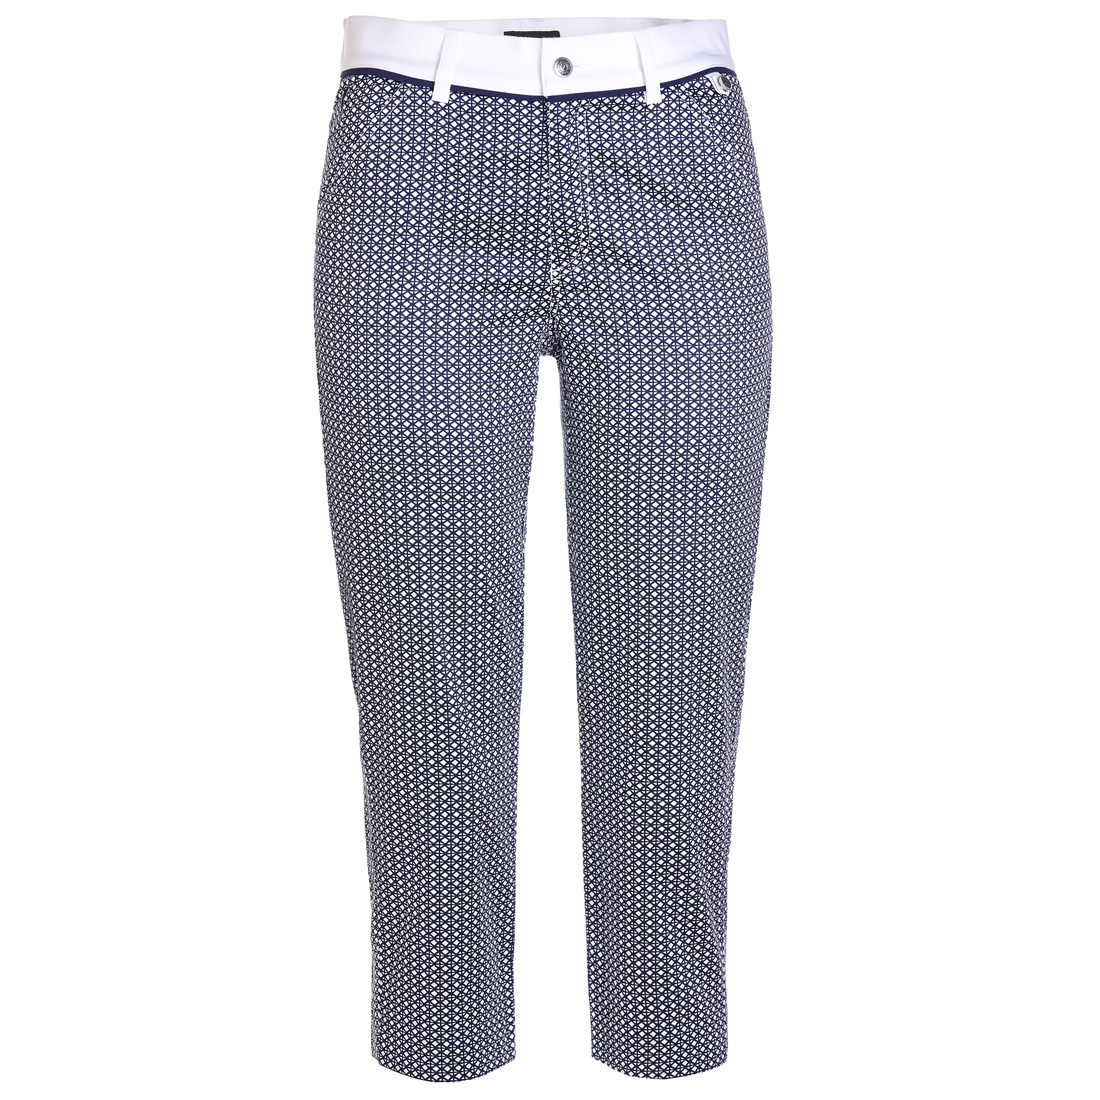 Golf Caprihose in Slim Fit